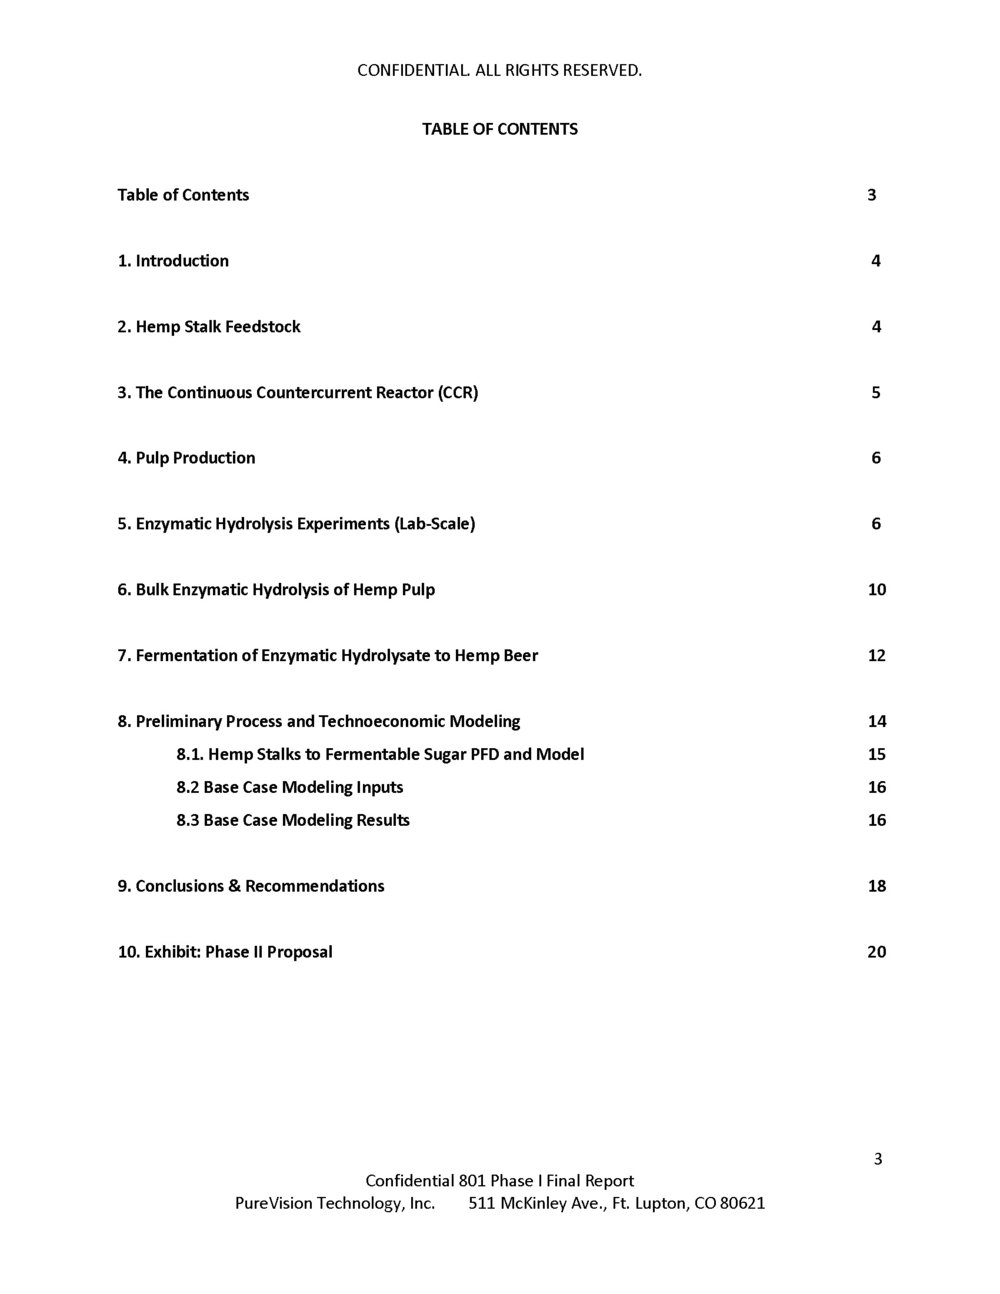 801 Final Report 06-21-17_Page_03.jpg